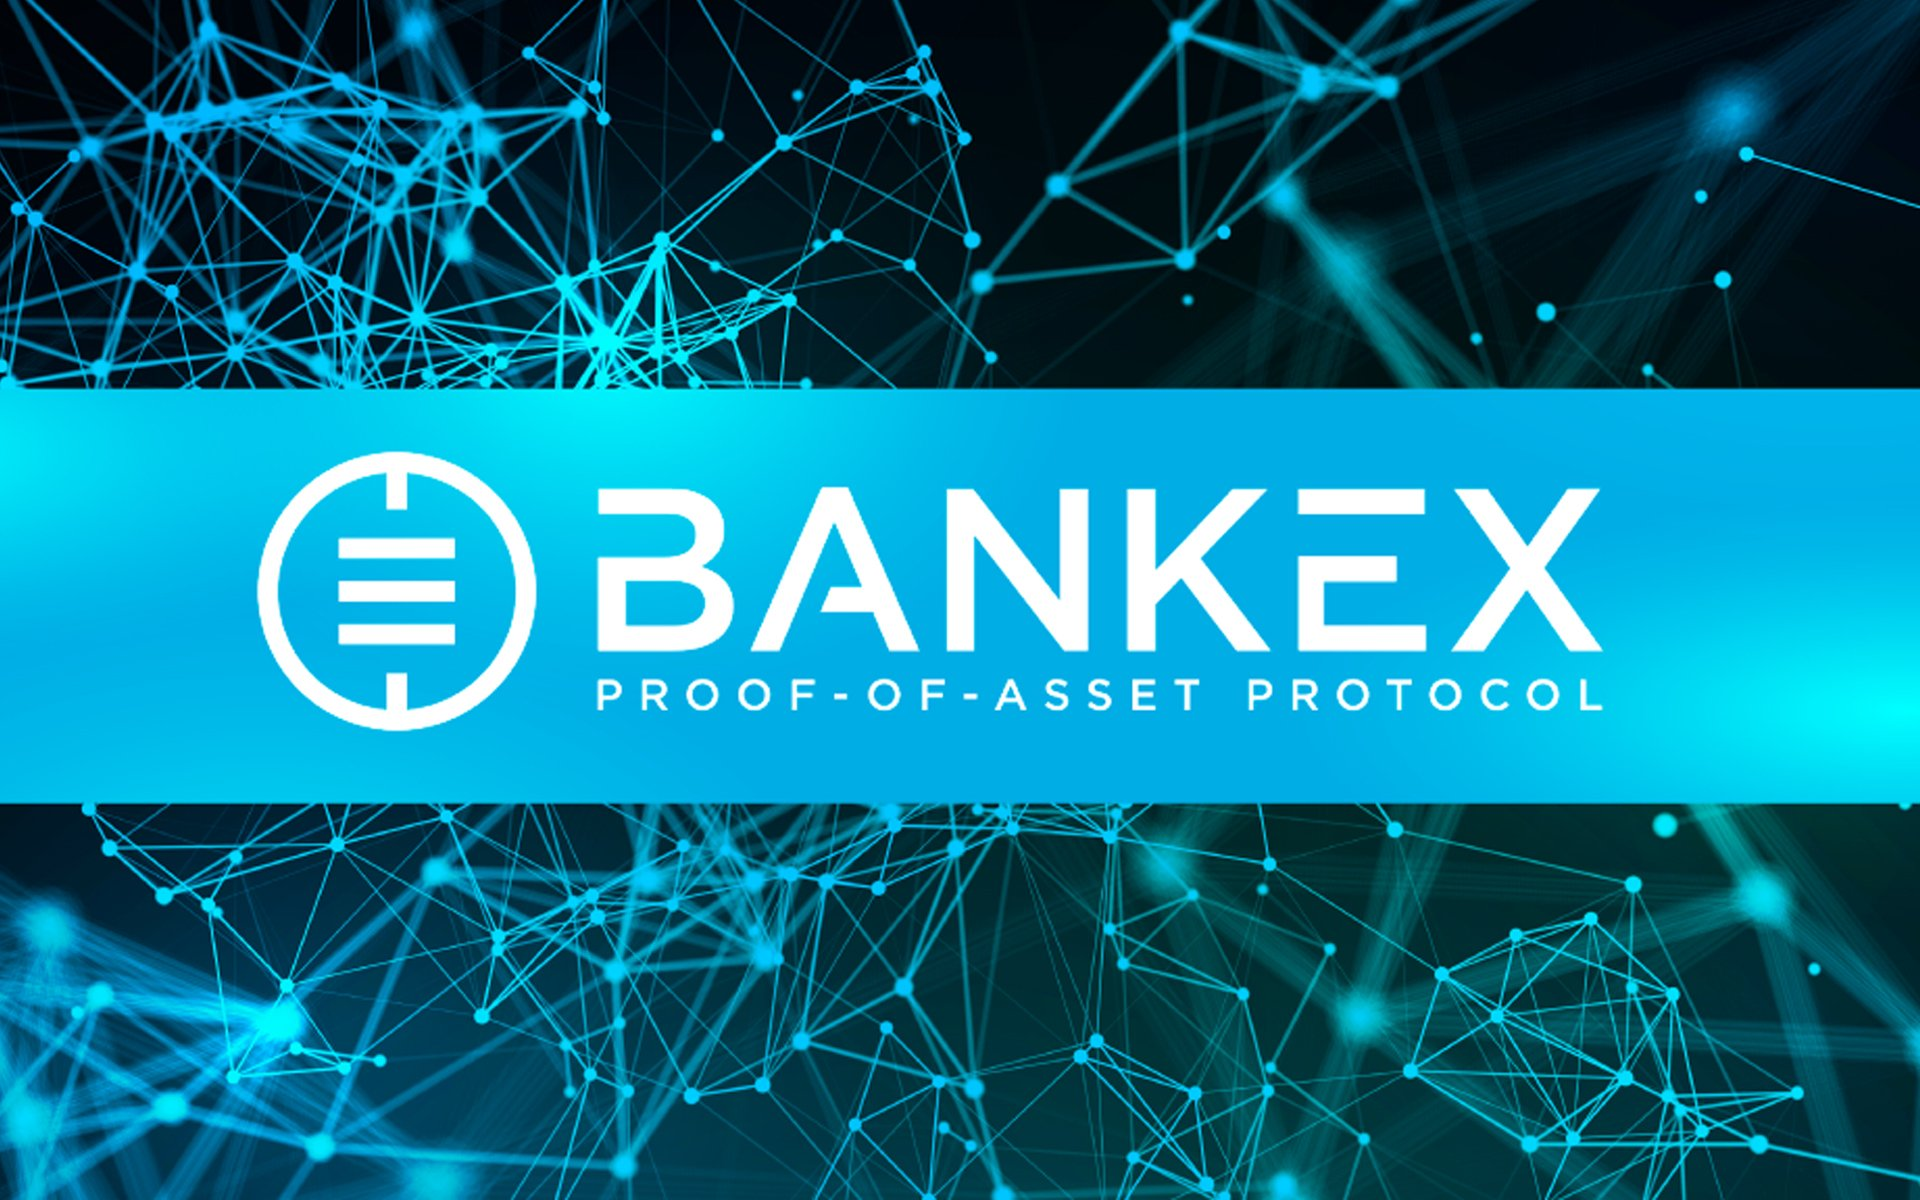 The BANKEX Token Sale Comes to an End with the Company Earning Its Place in the Top - 20 of the Most Successful Token Sales of All Time